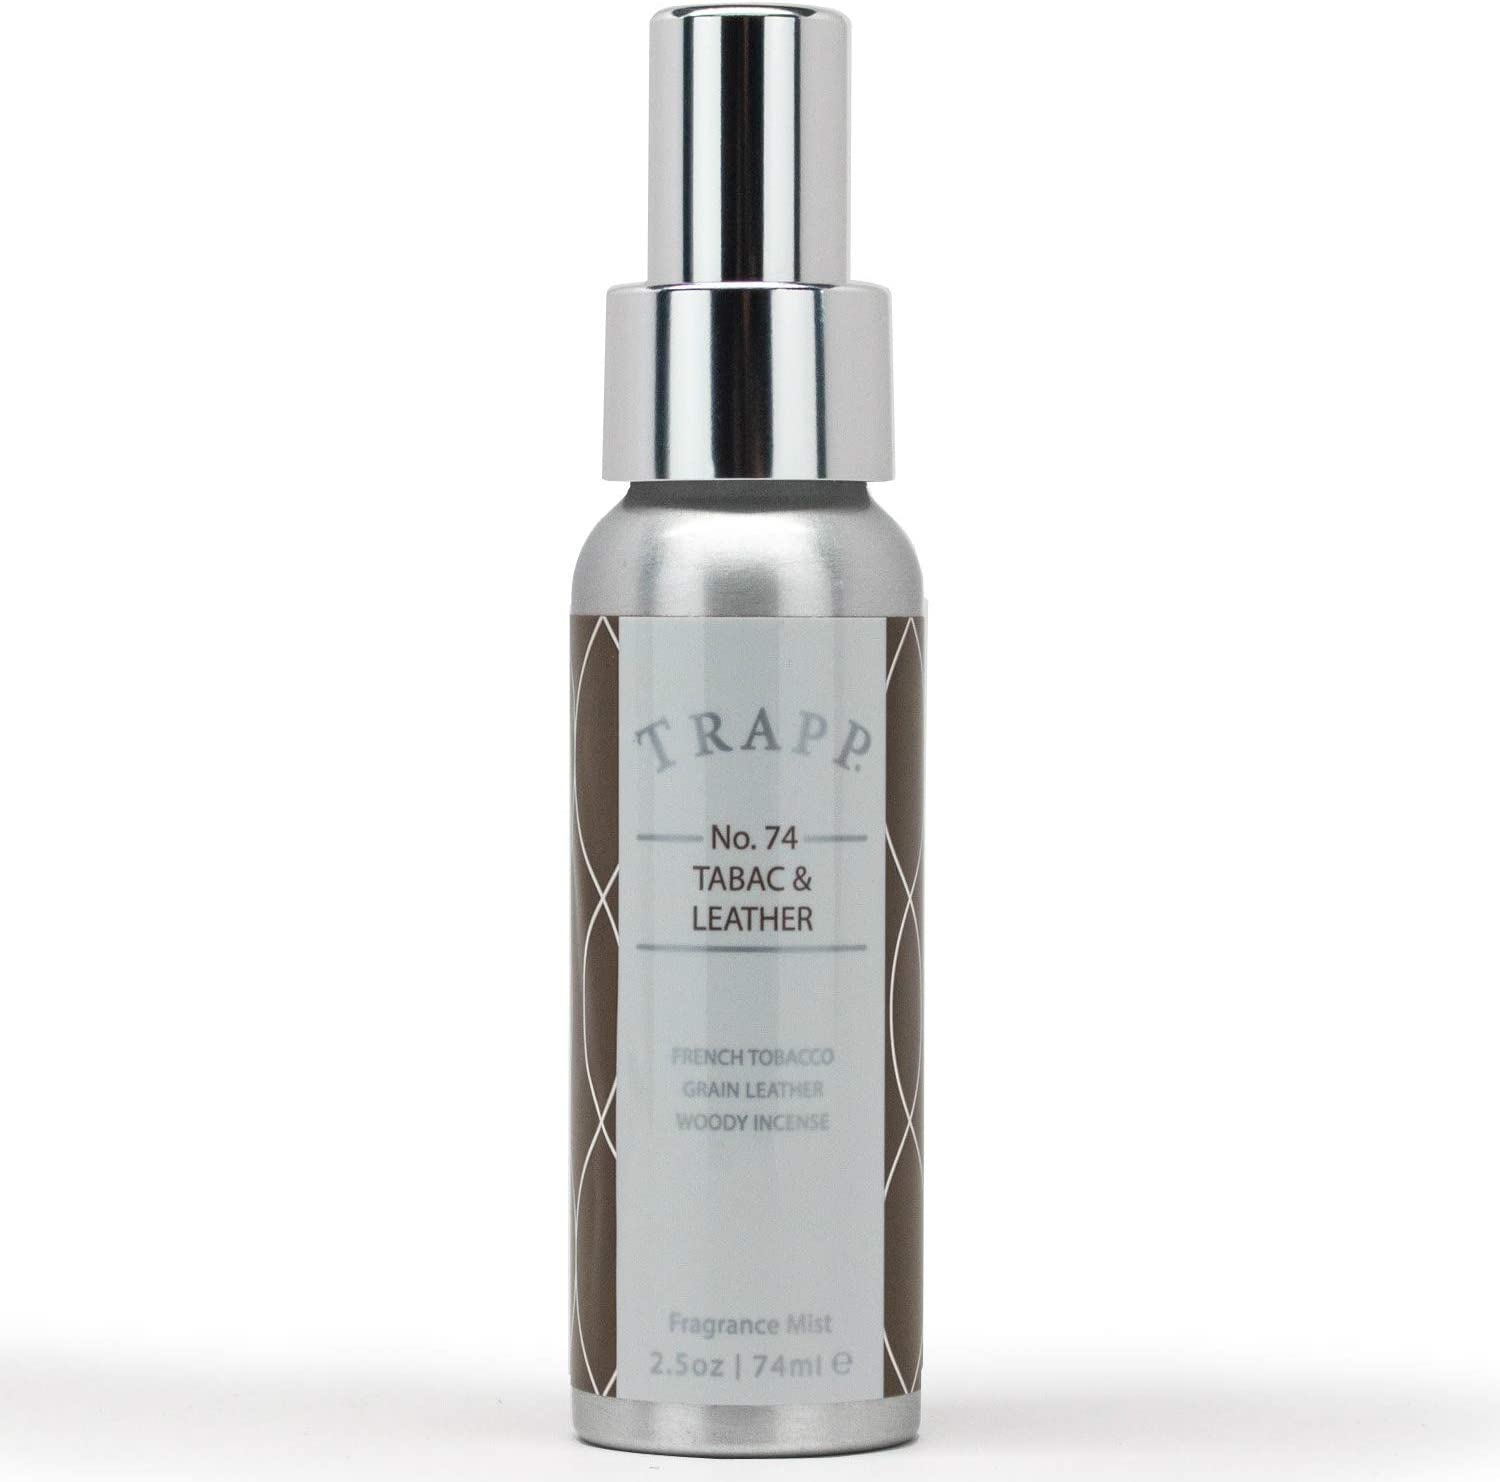 Trapp Home Fragrance Mist - No. 74 oz Sales mart results 1 Tabac Leather 2.5